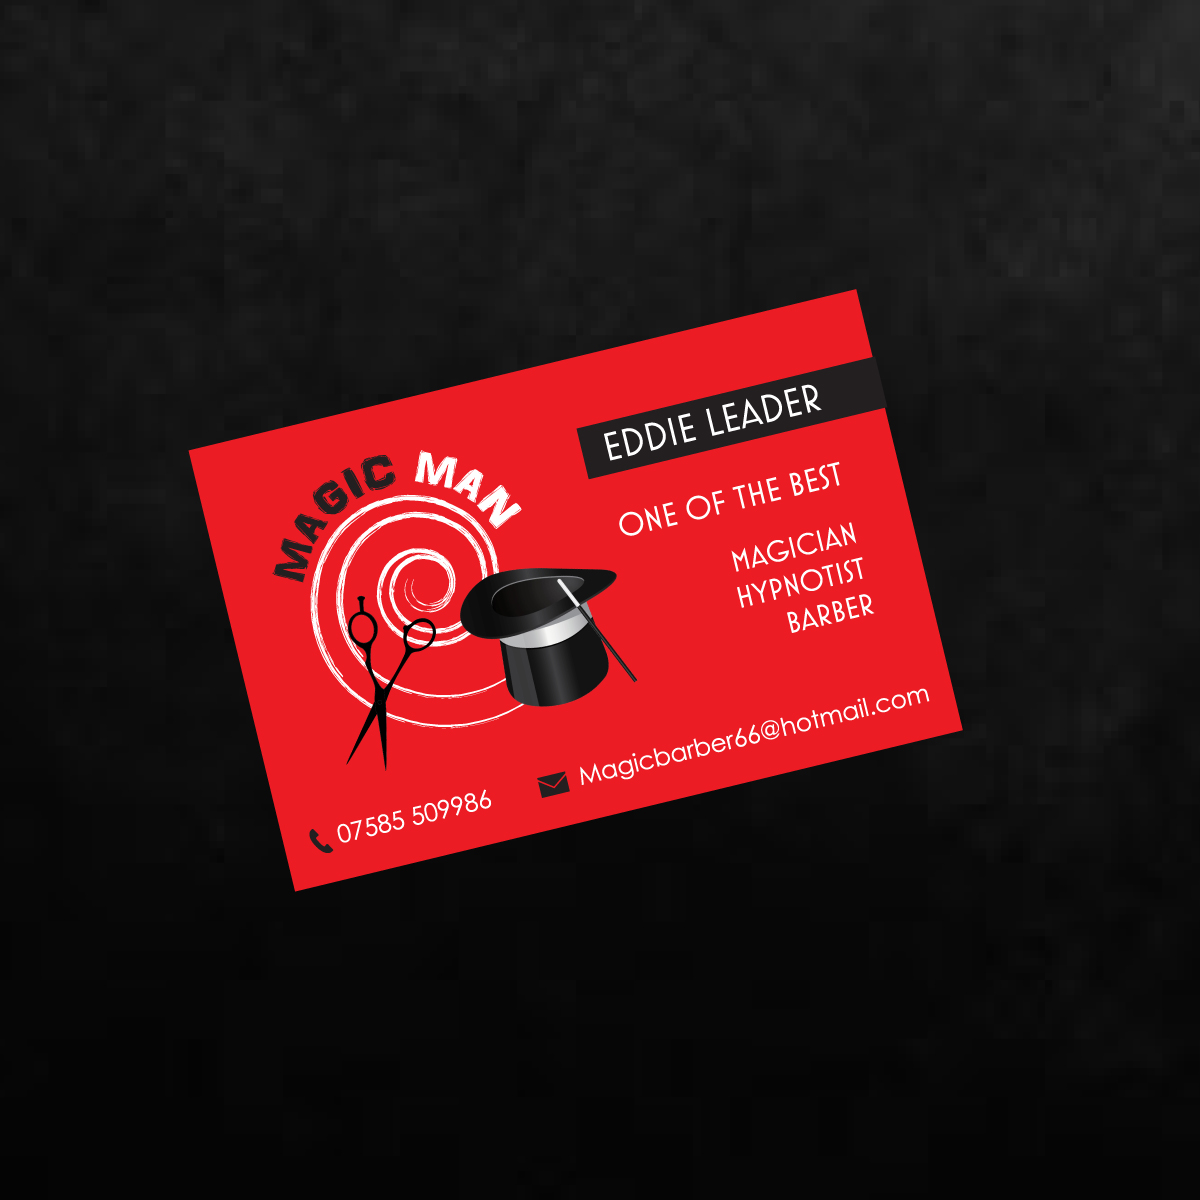 Magician Business Card Design for a Company by red rocket creative ...